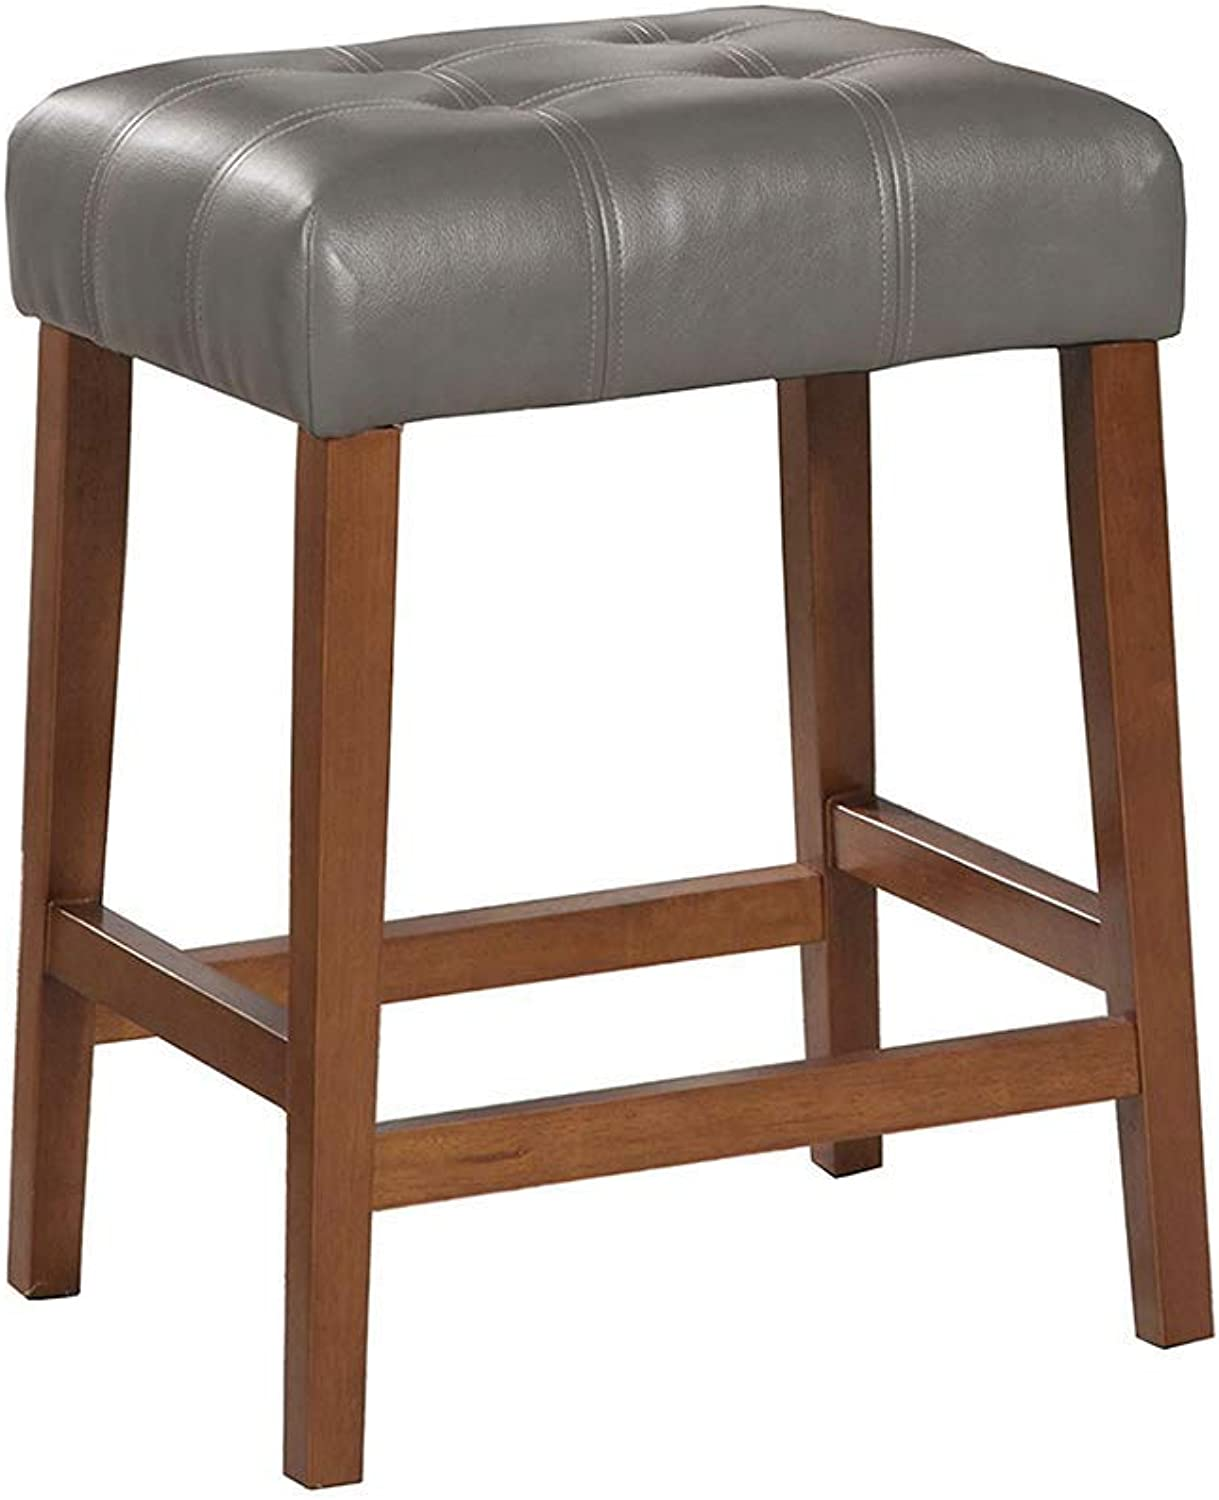 HomePop Leatherette Square Tufted Backless Counter Height Stool, 24-inch, Charcoal Grey